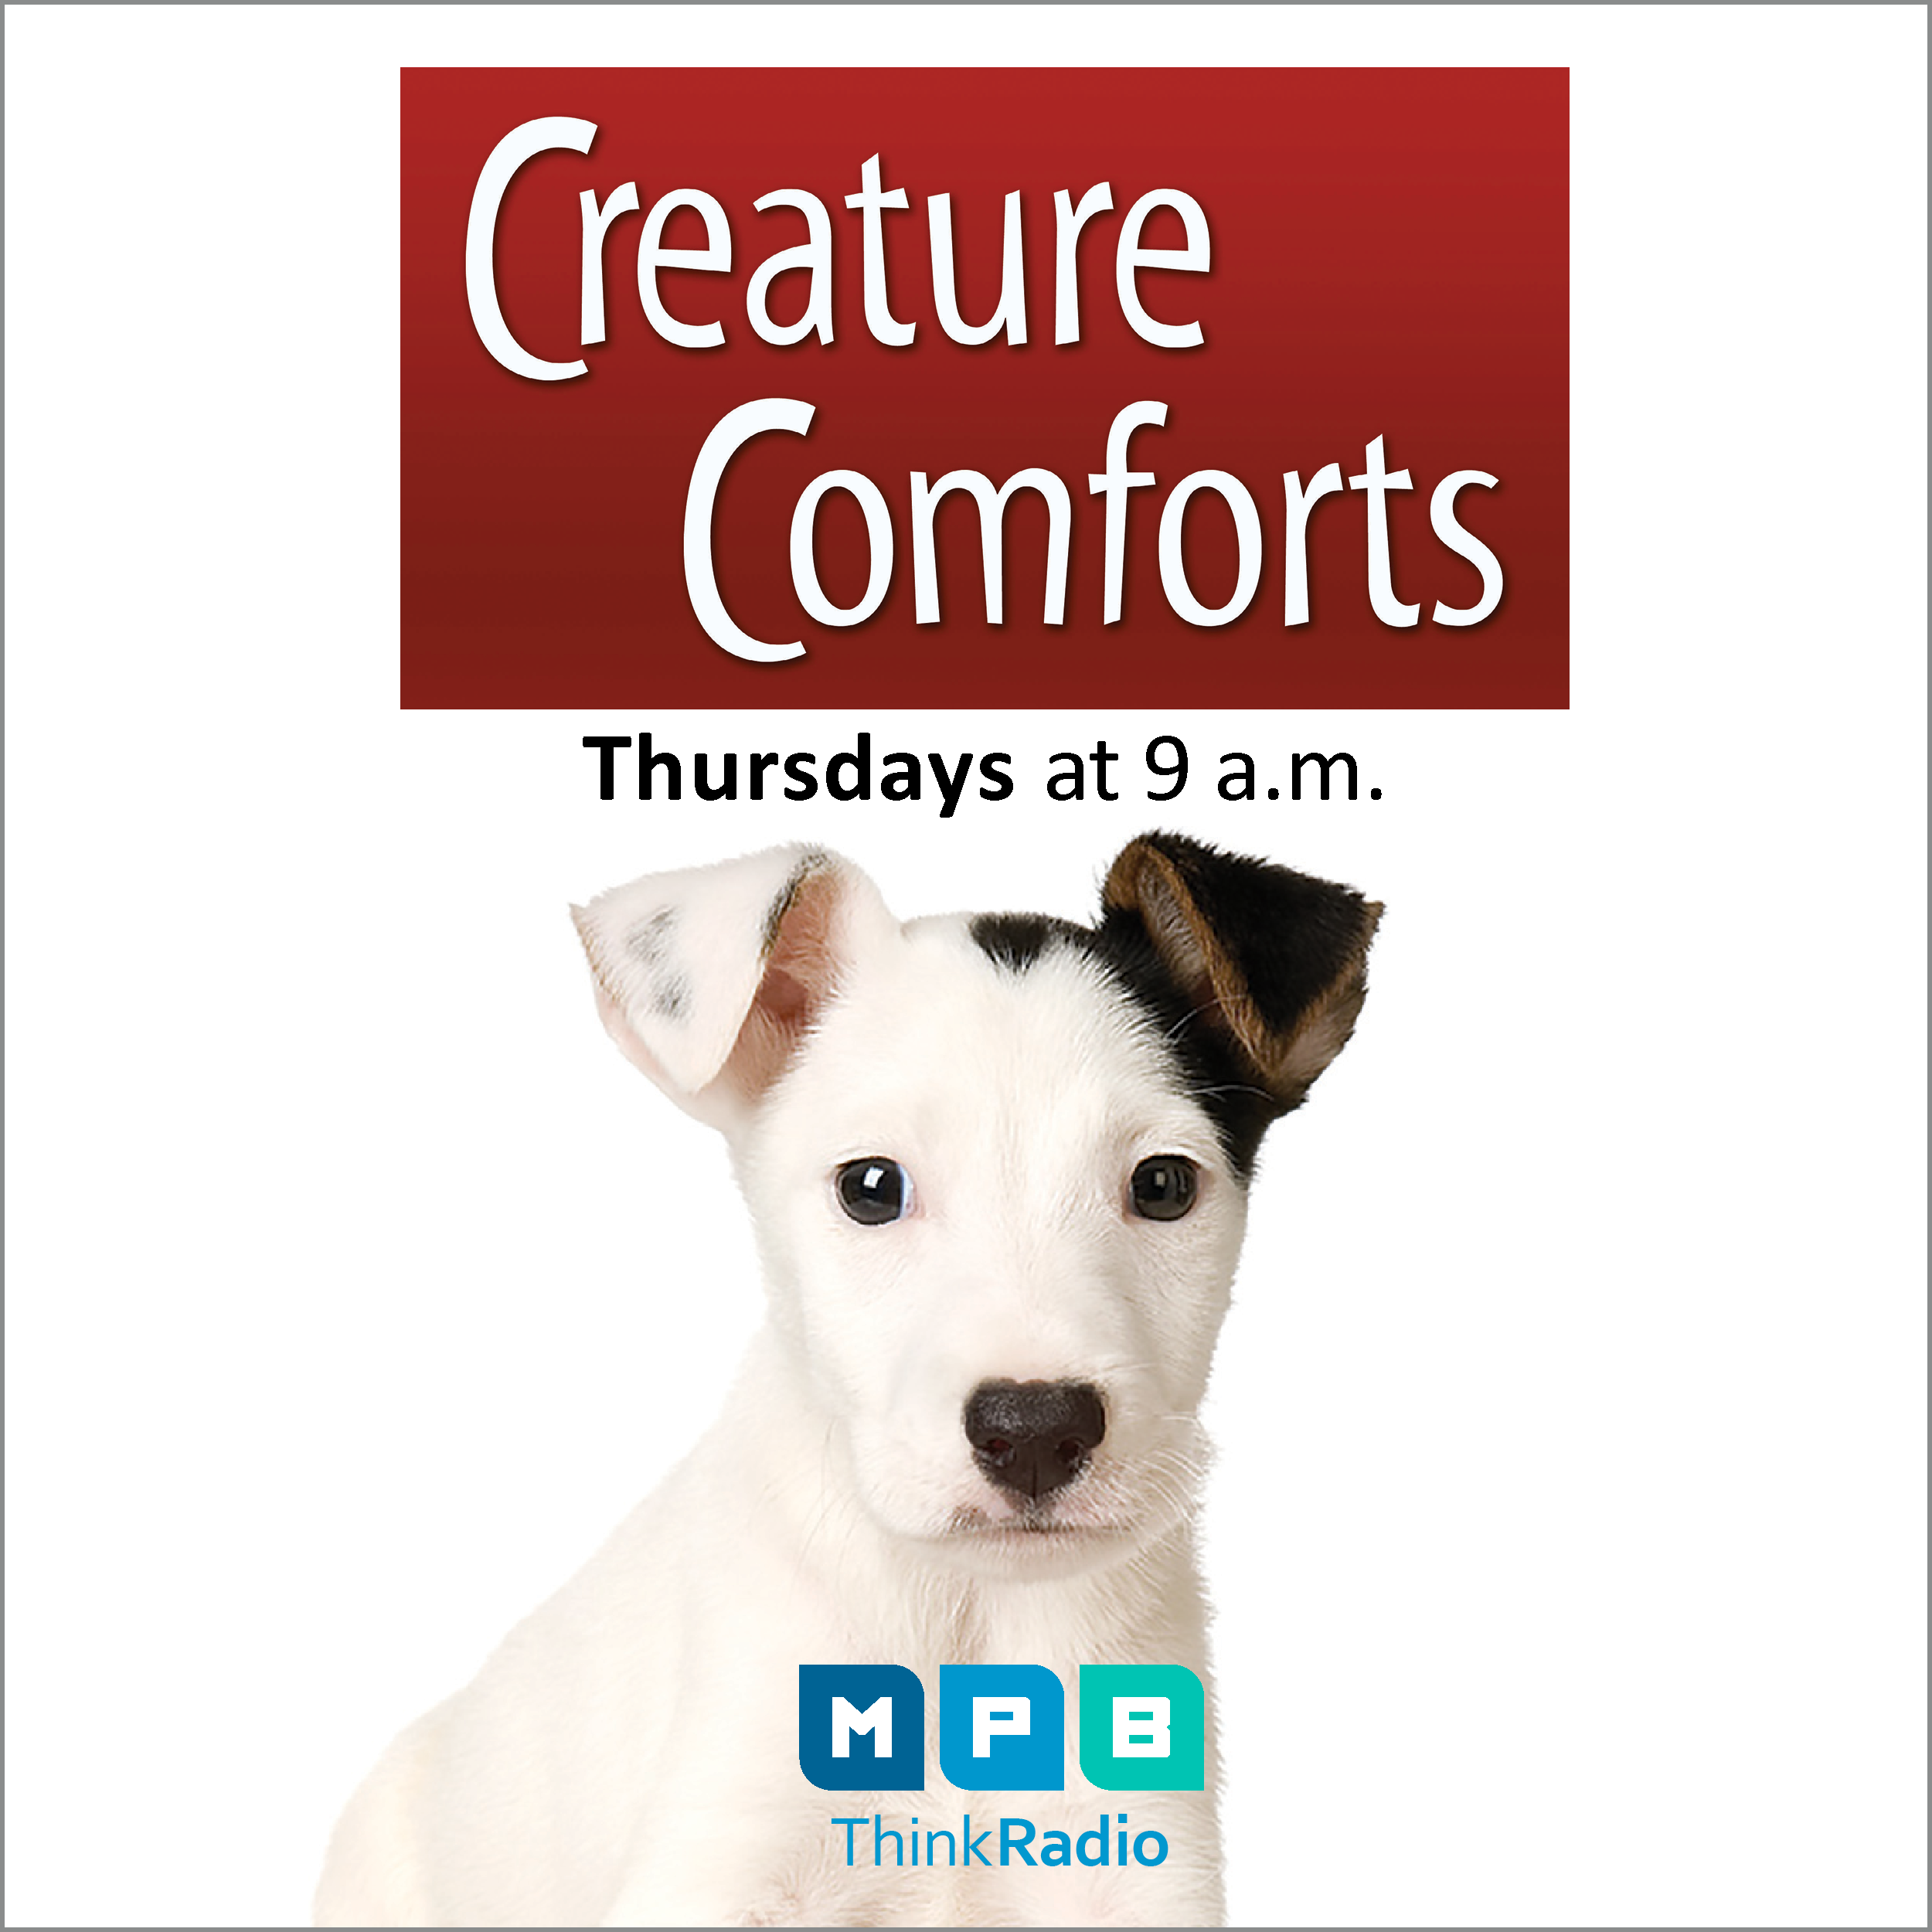 Listen to Creature Comforts every Thursday at 9 a.m. on MPB Think Radio